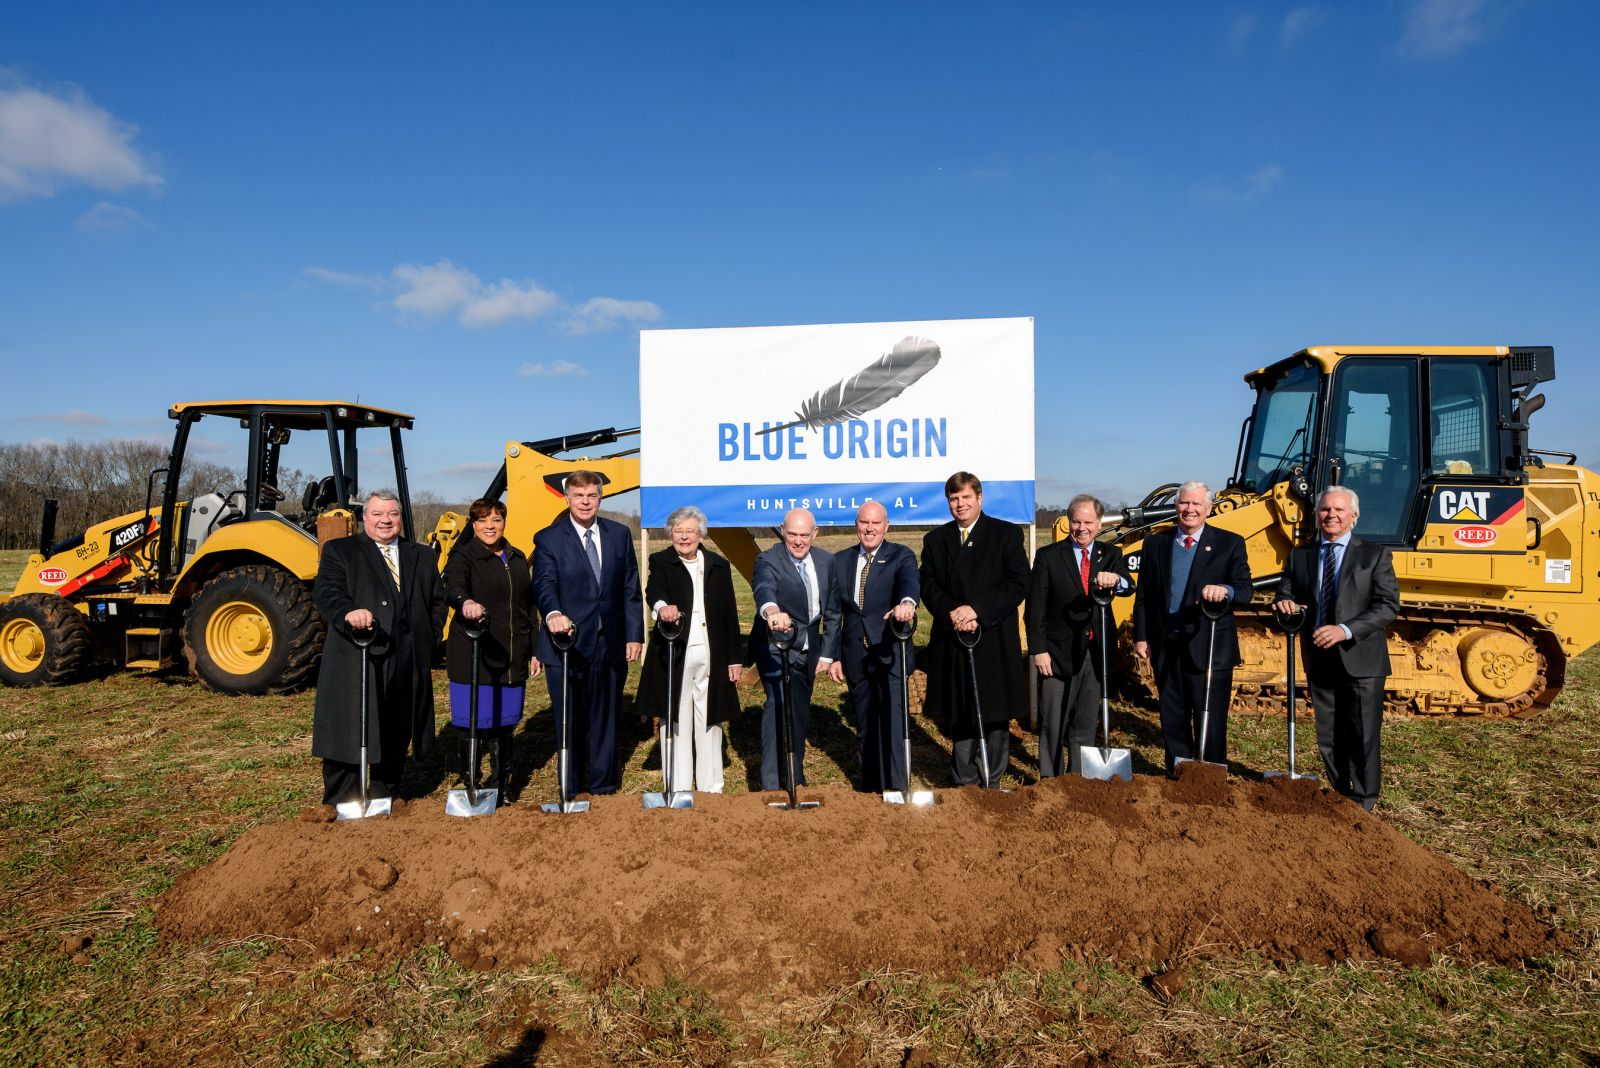 Blue Origin broke ground on new engine-production facilities in Alabama on Friday, Jan. 25, 2019. Photo Credit: ULA